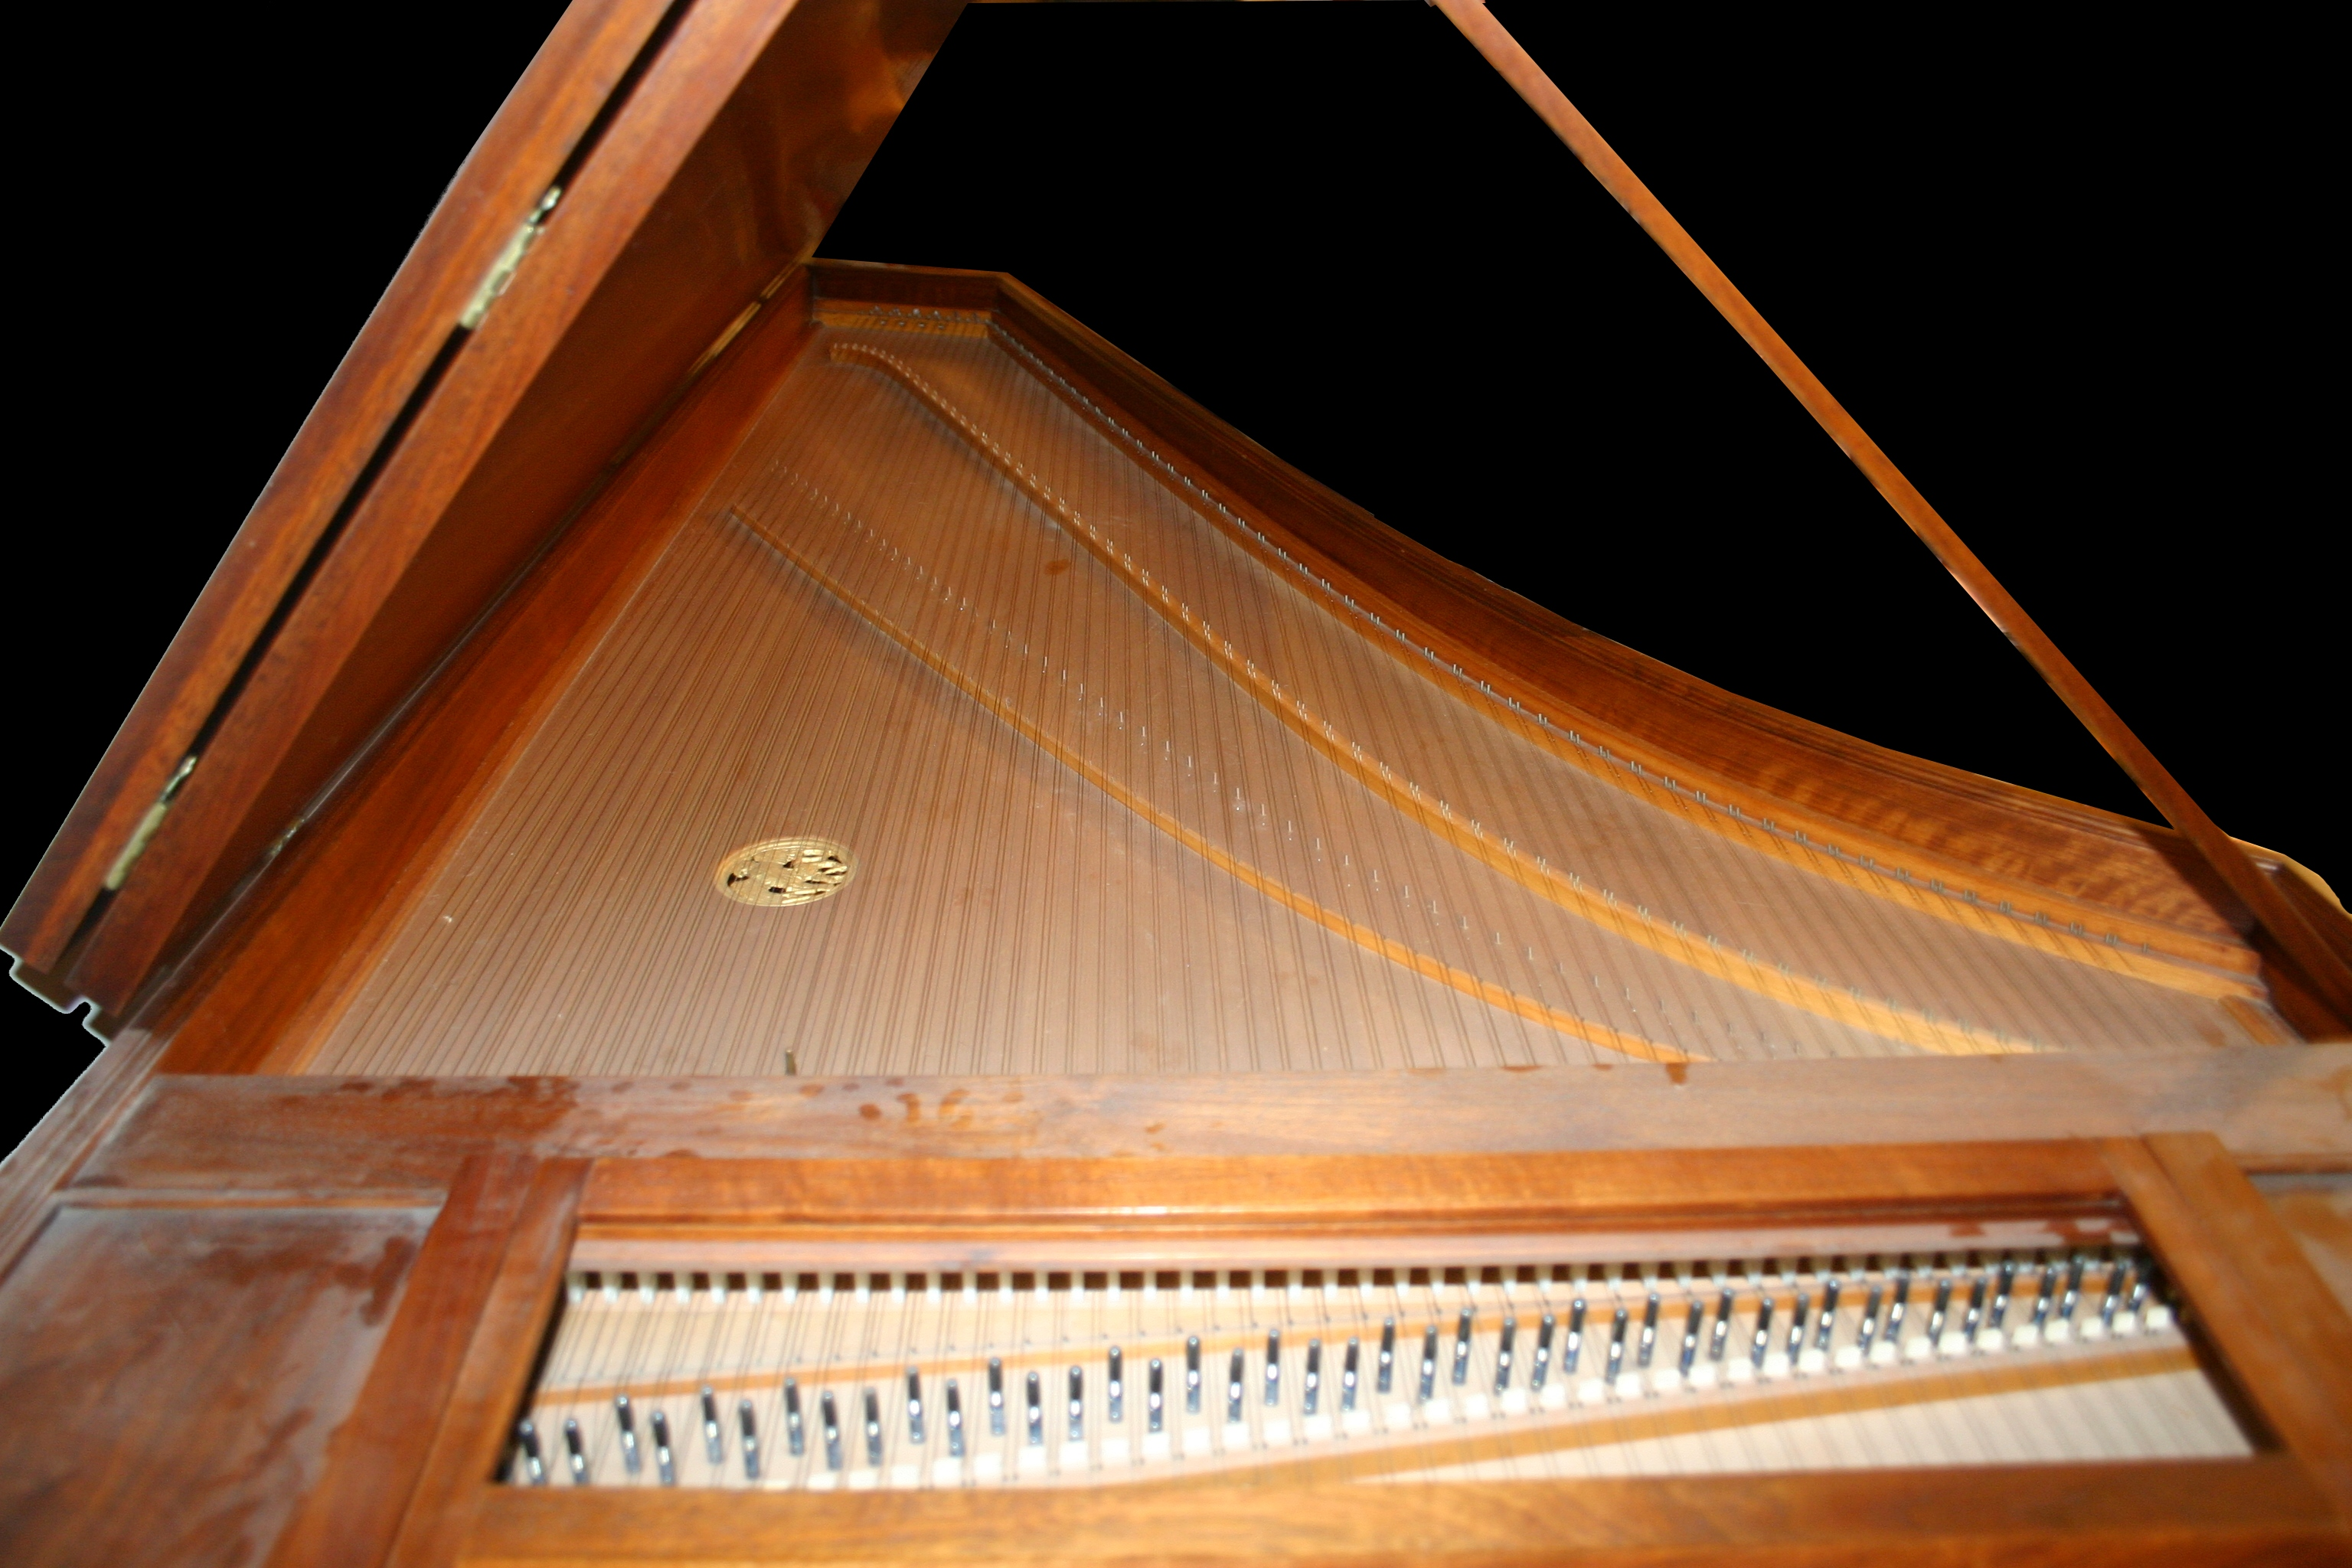 Baltimorerecorders Org Information About The Harpsichord